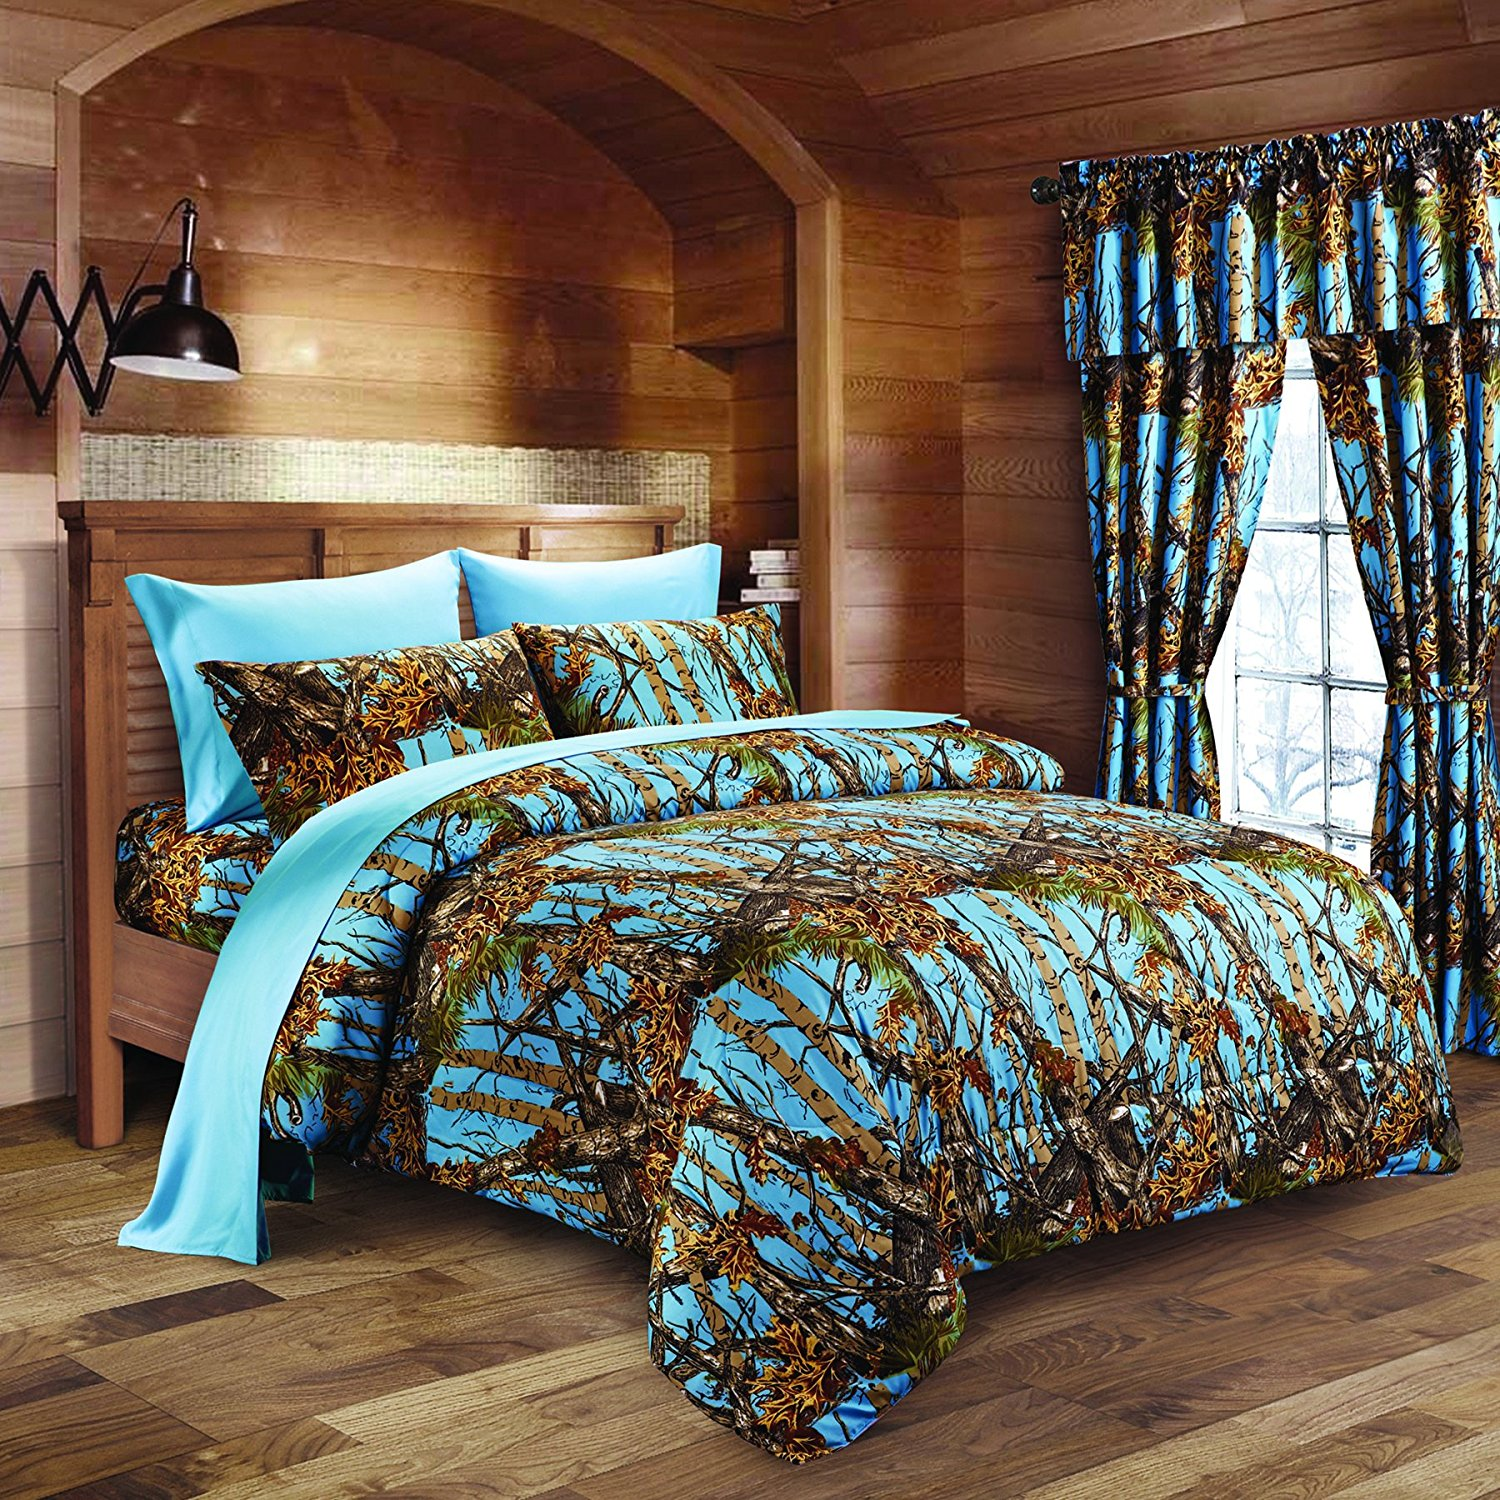 20 Lakes Luxurious Microfiber Powder Blue Camo Comforter & Sheet Set Bed in a Bag - Queen